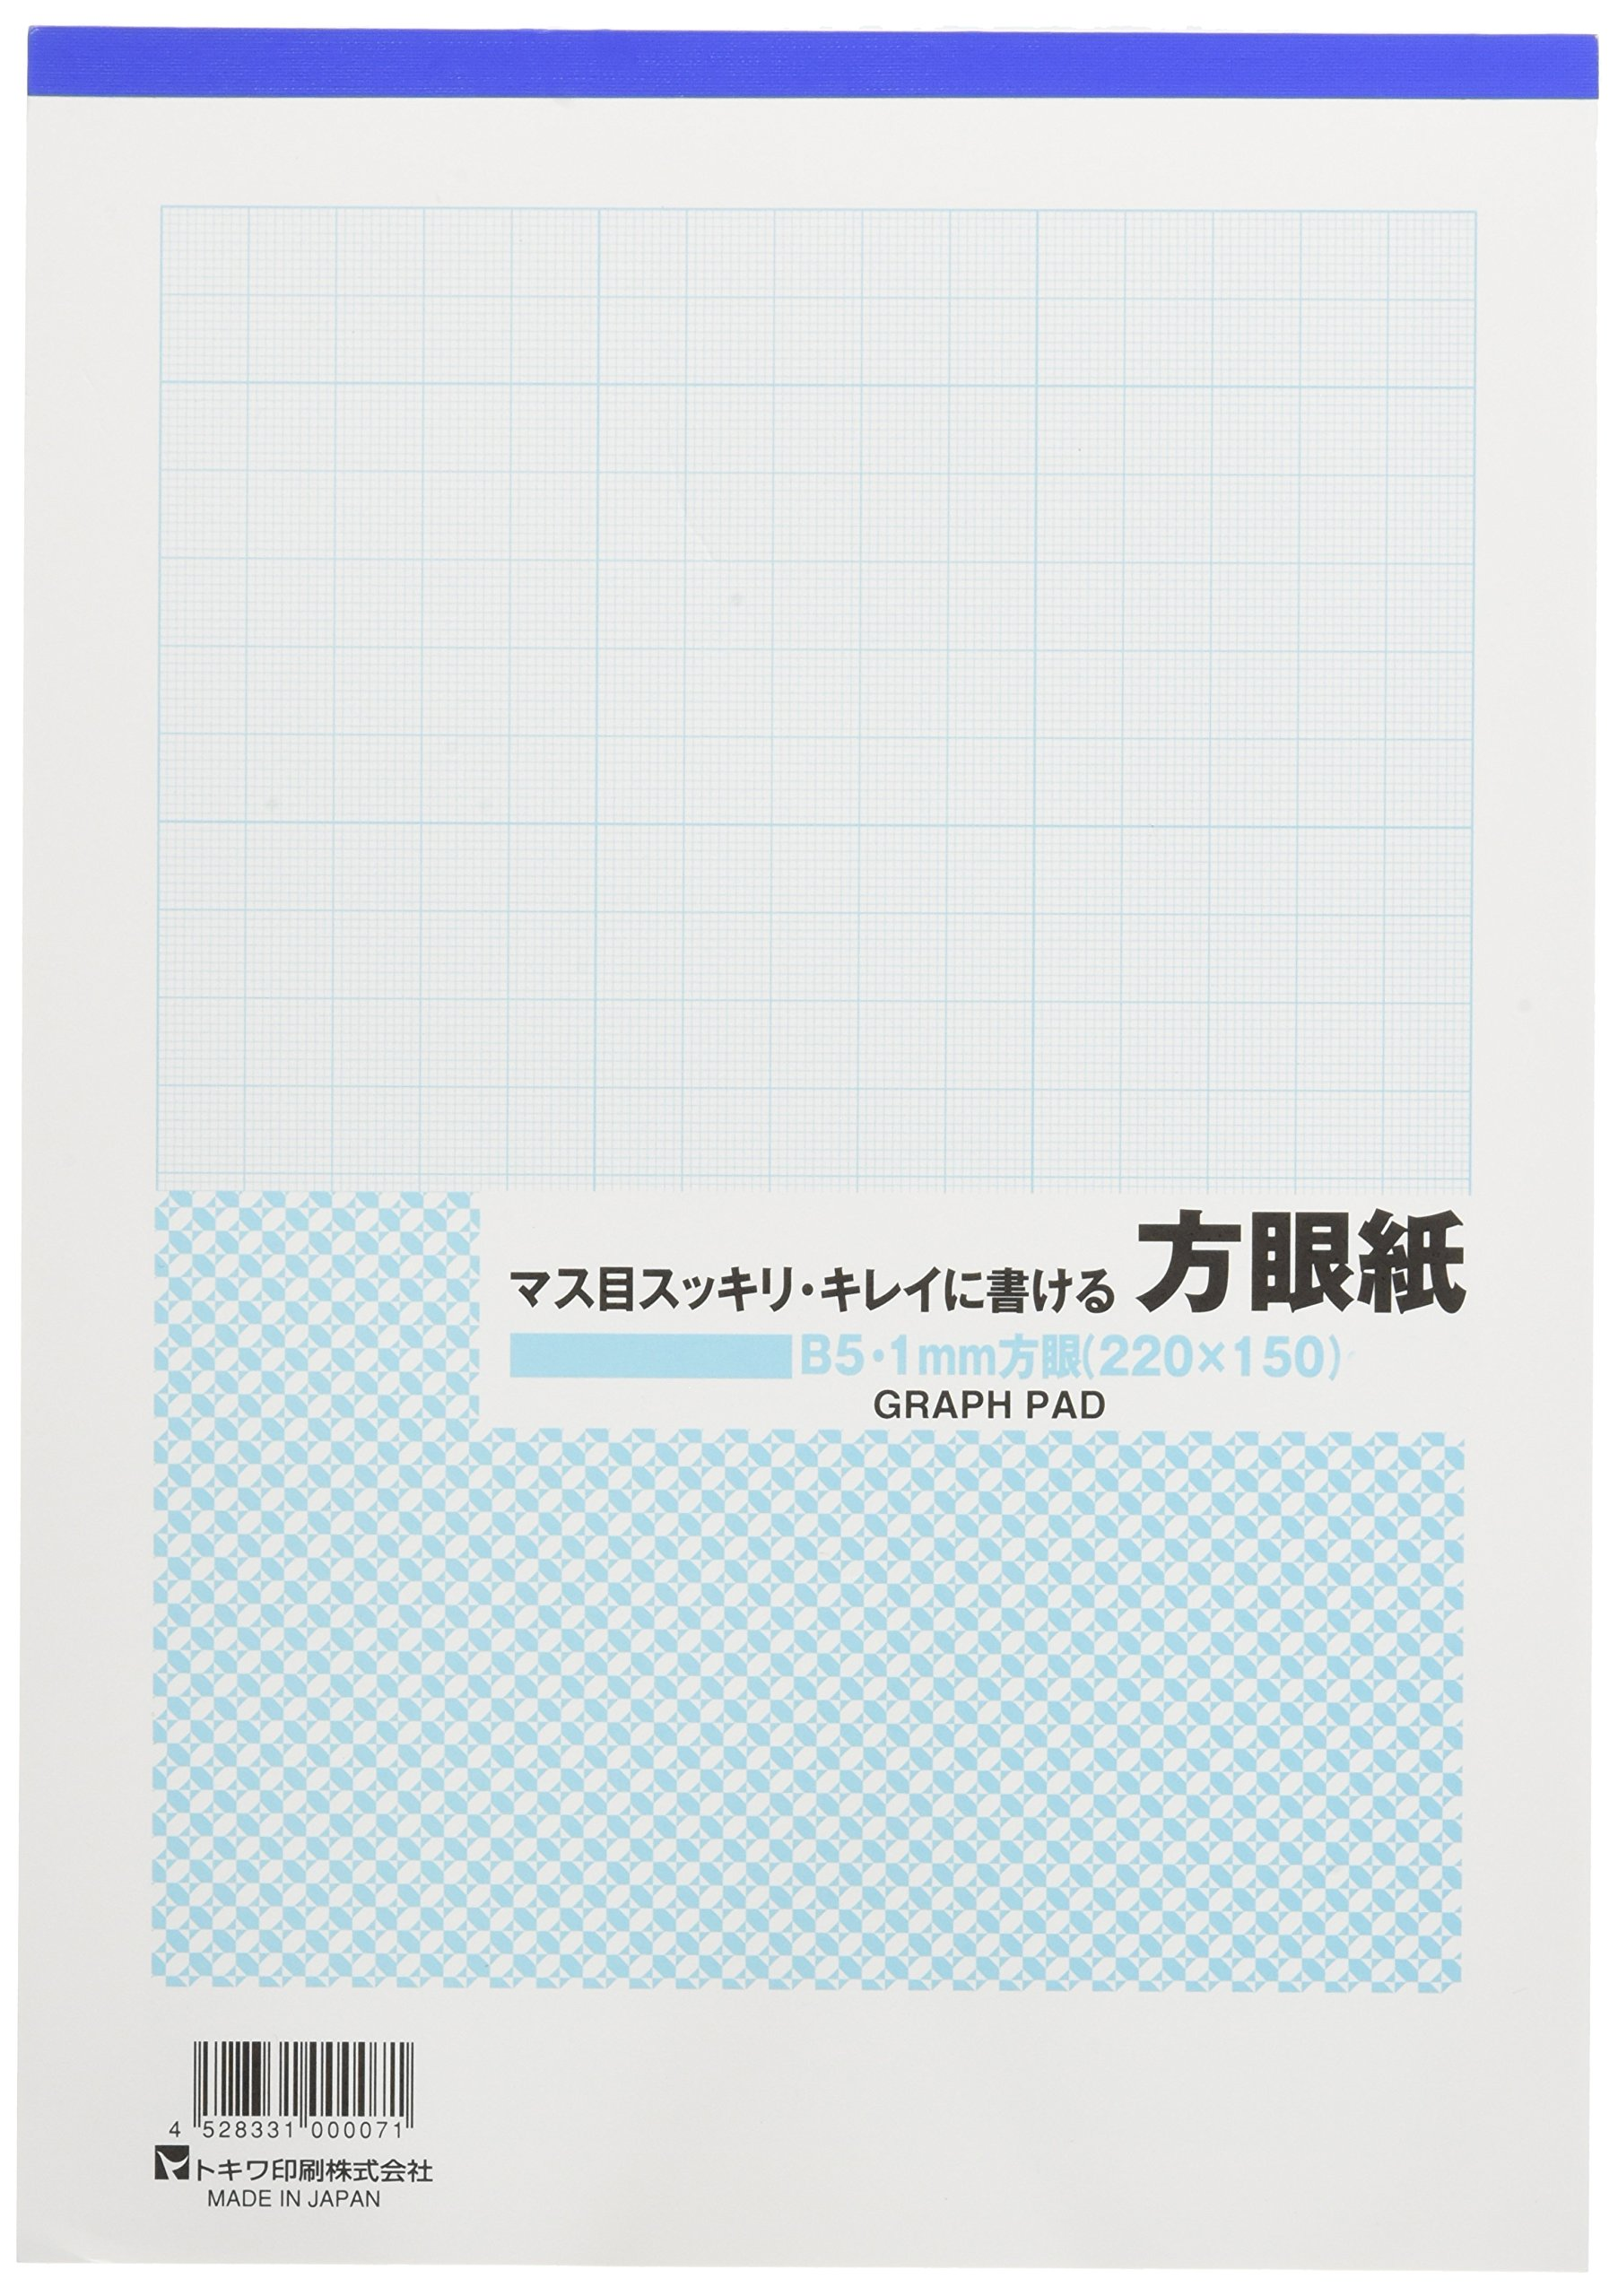 San notebook graph paper 548 B5 size 1mm grid 10 books set by SAN NOTE (Image #1)